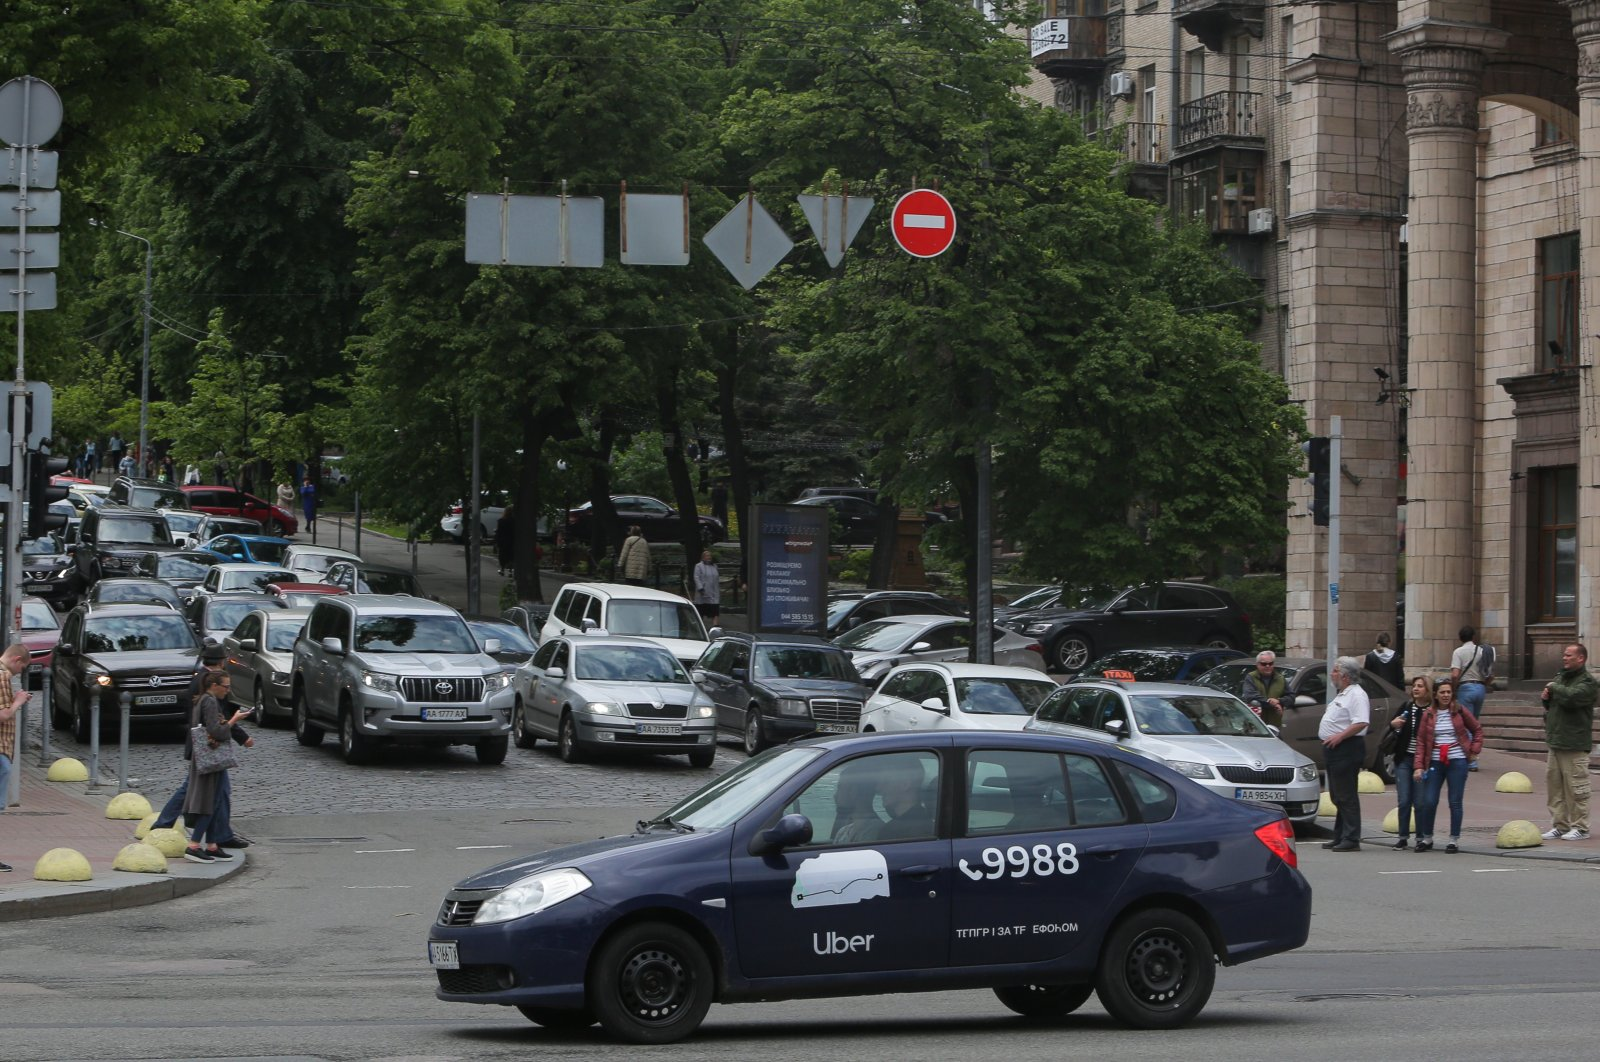 UBER taxi service vehicle drives through the Khreshchatyk street in Kyiv, Ukraine, May 7, 2019. (Getty Images)